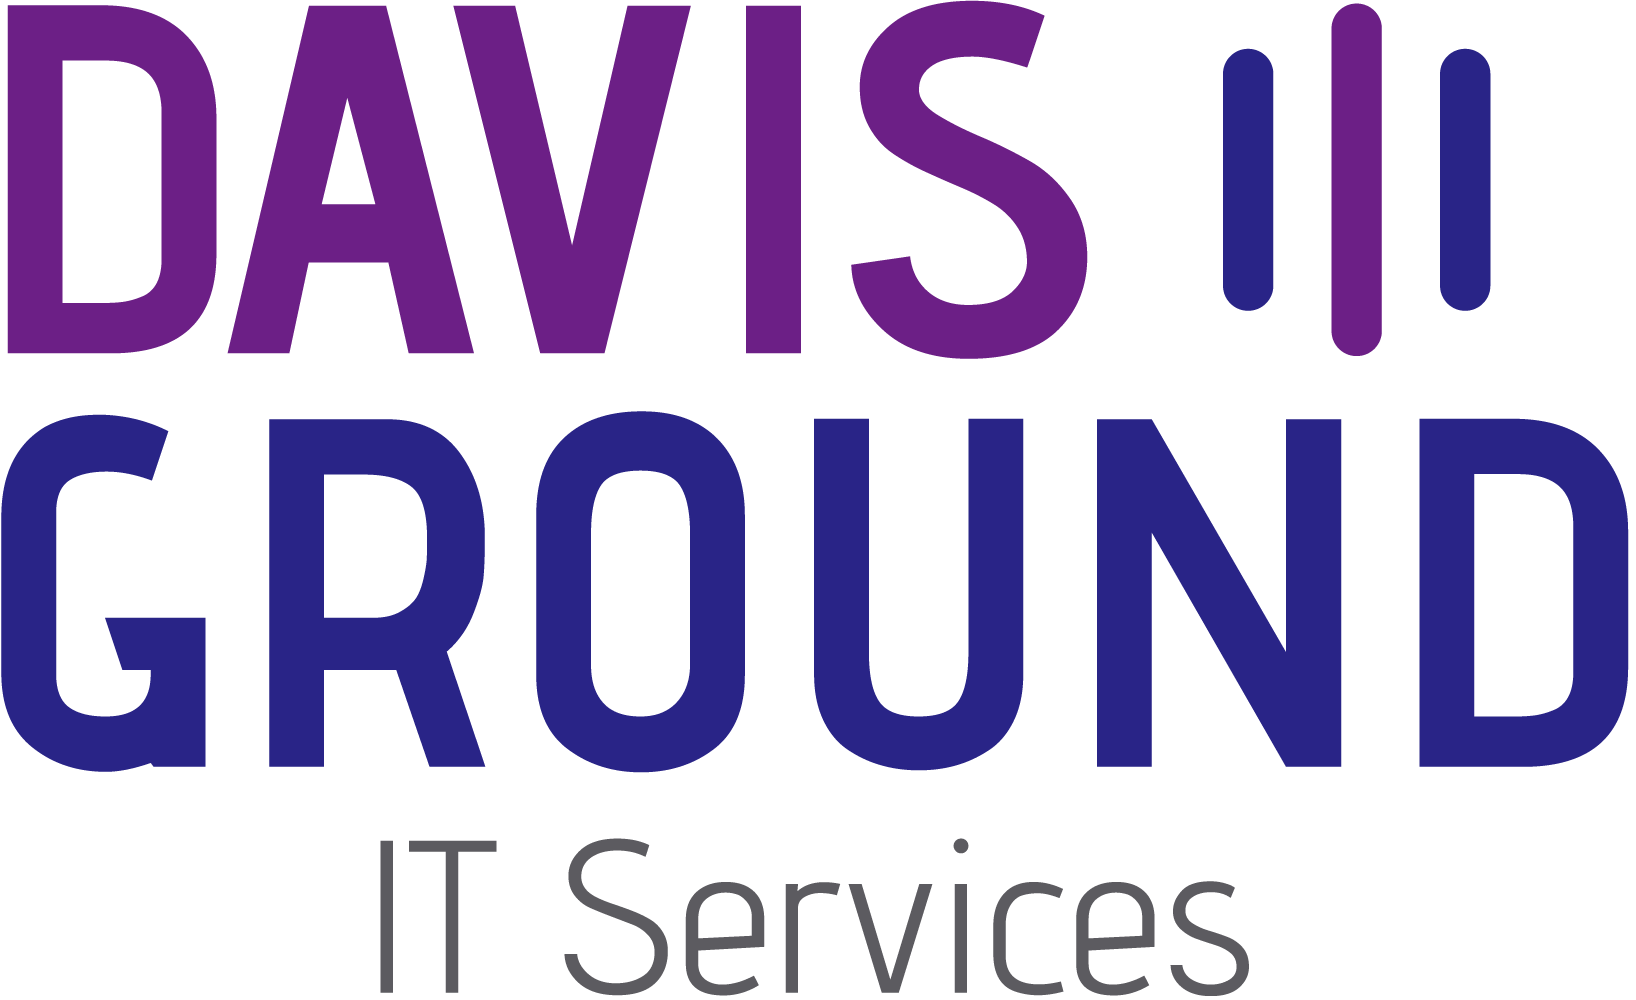 Davis Ground IT Services